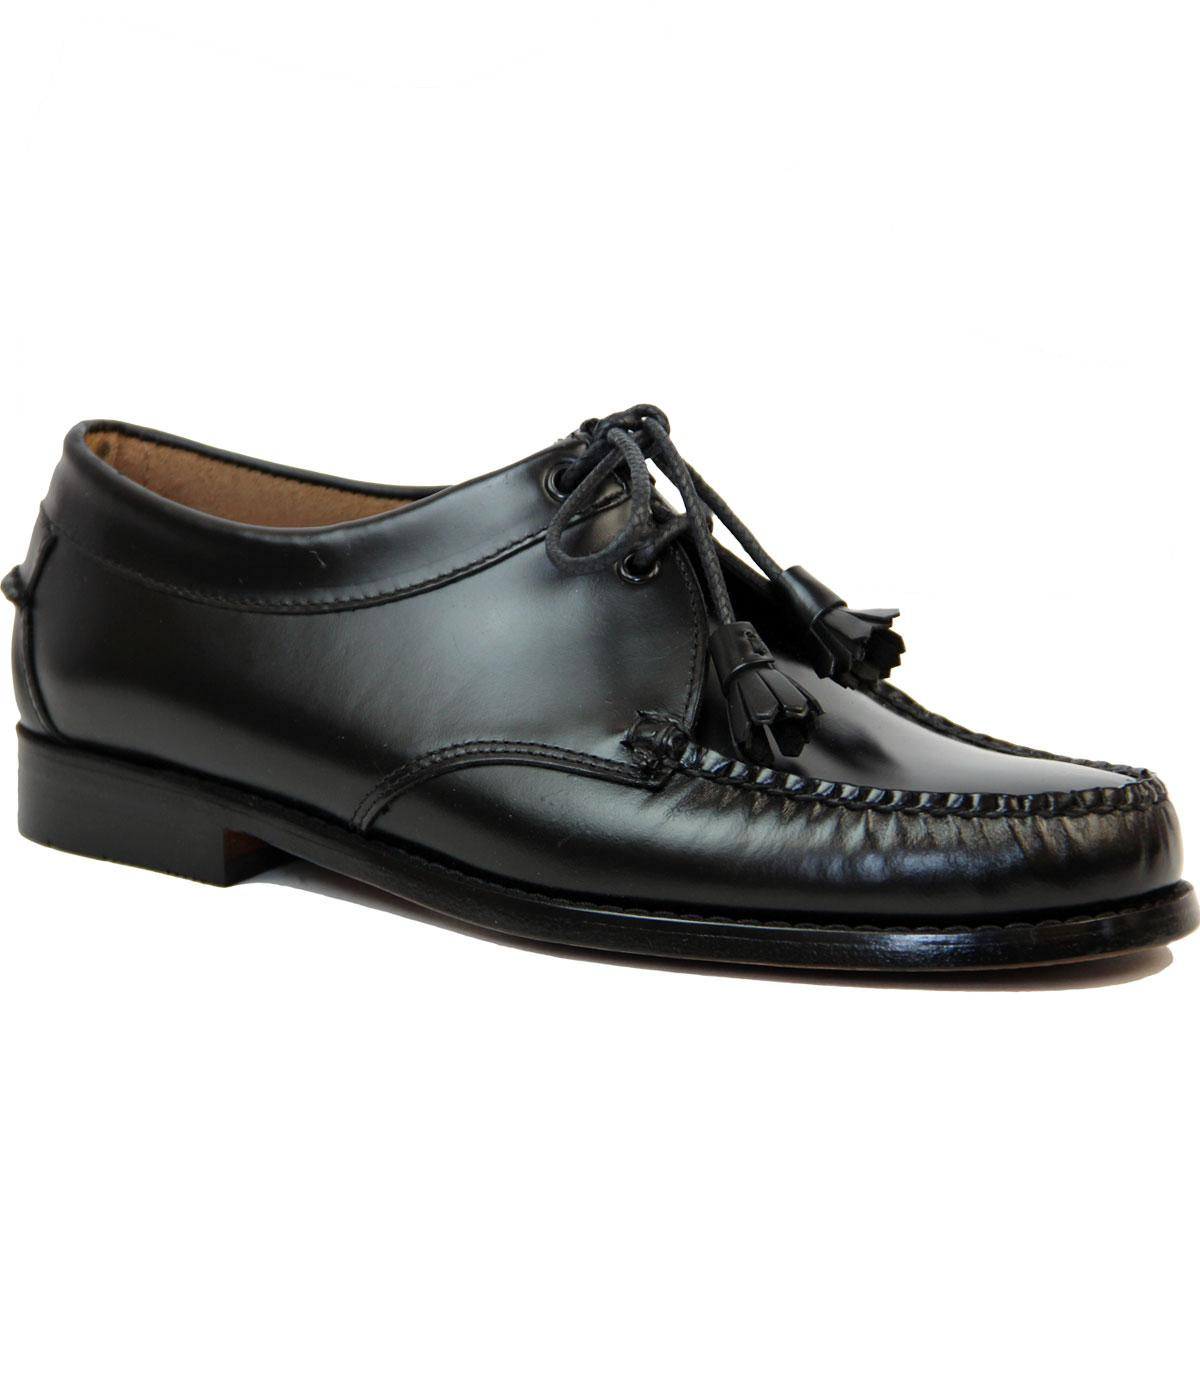 BASS WEEJUNS Hand Sewn Retro Tie Leather Shoes